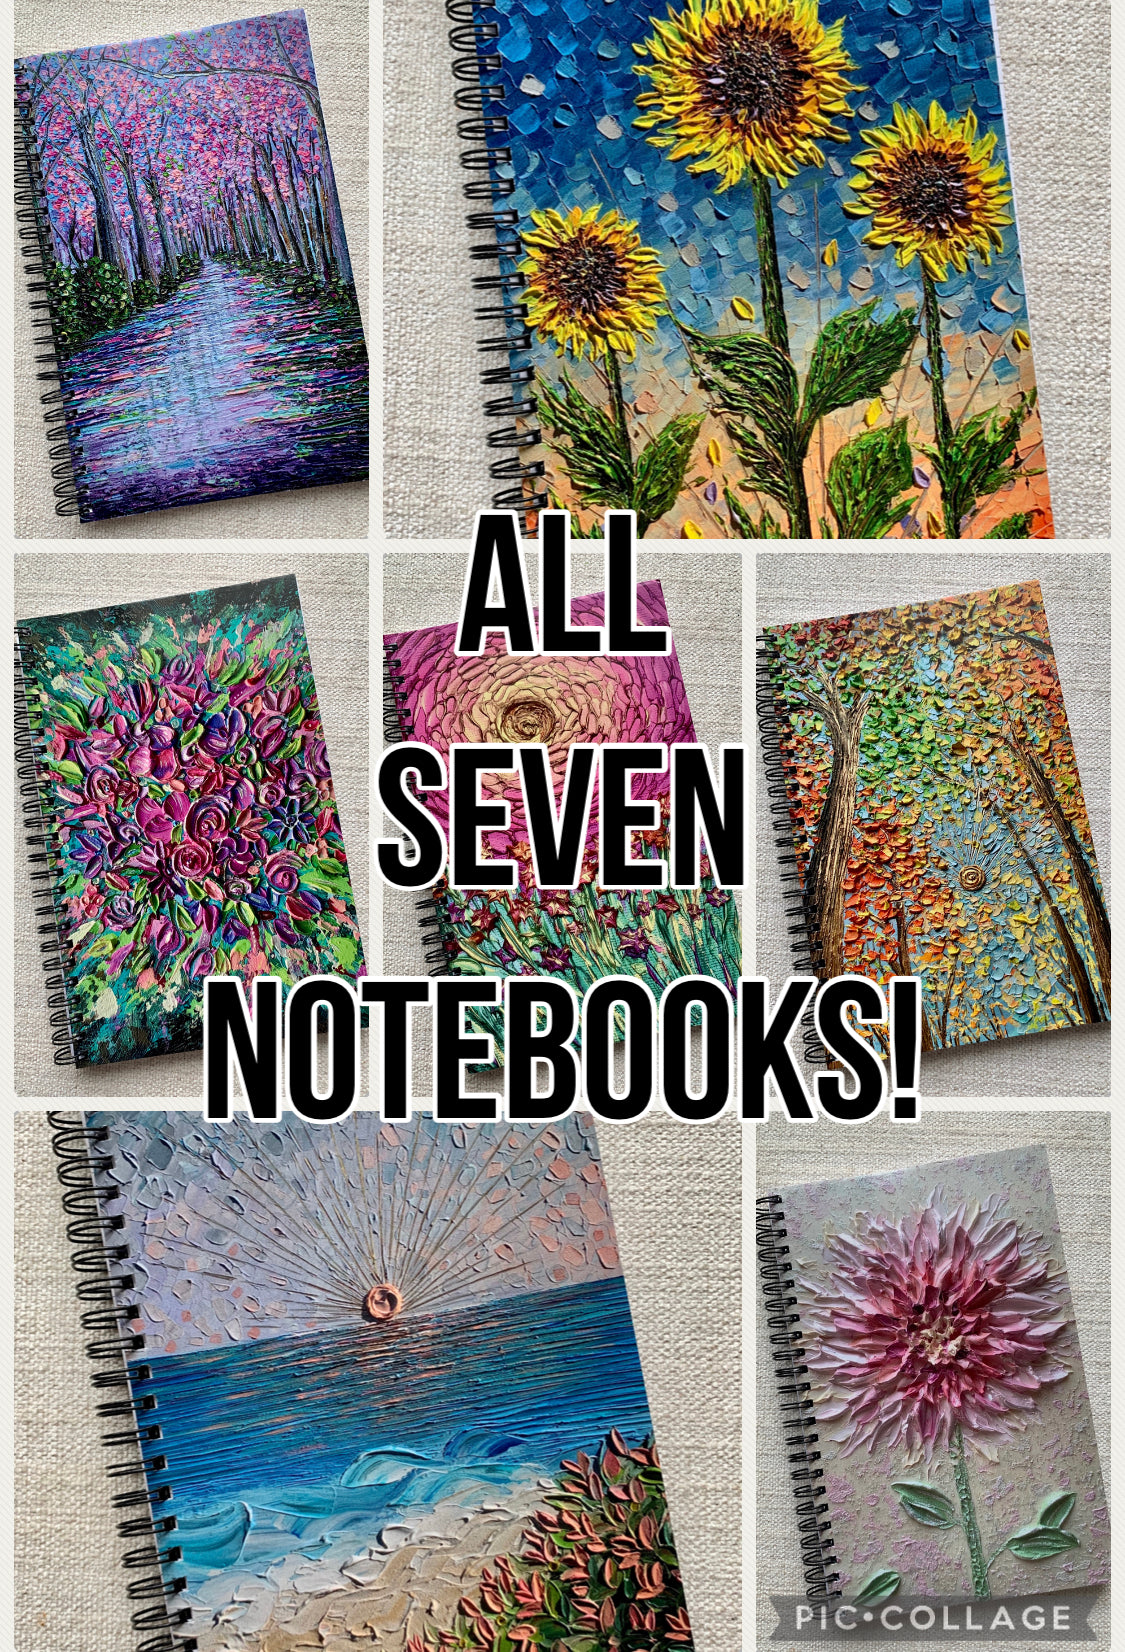 Full Collection | All 7 Notebooks